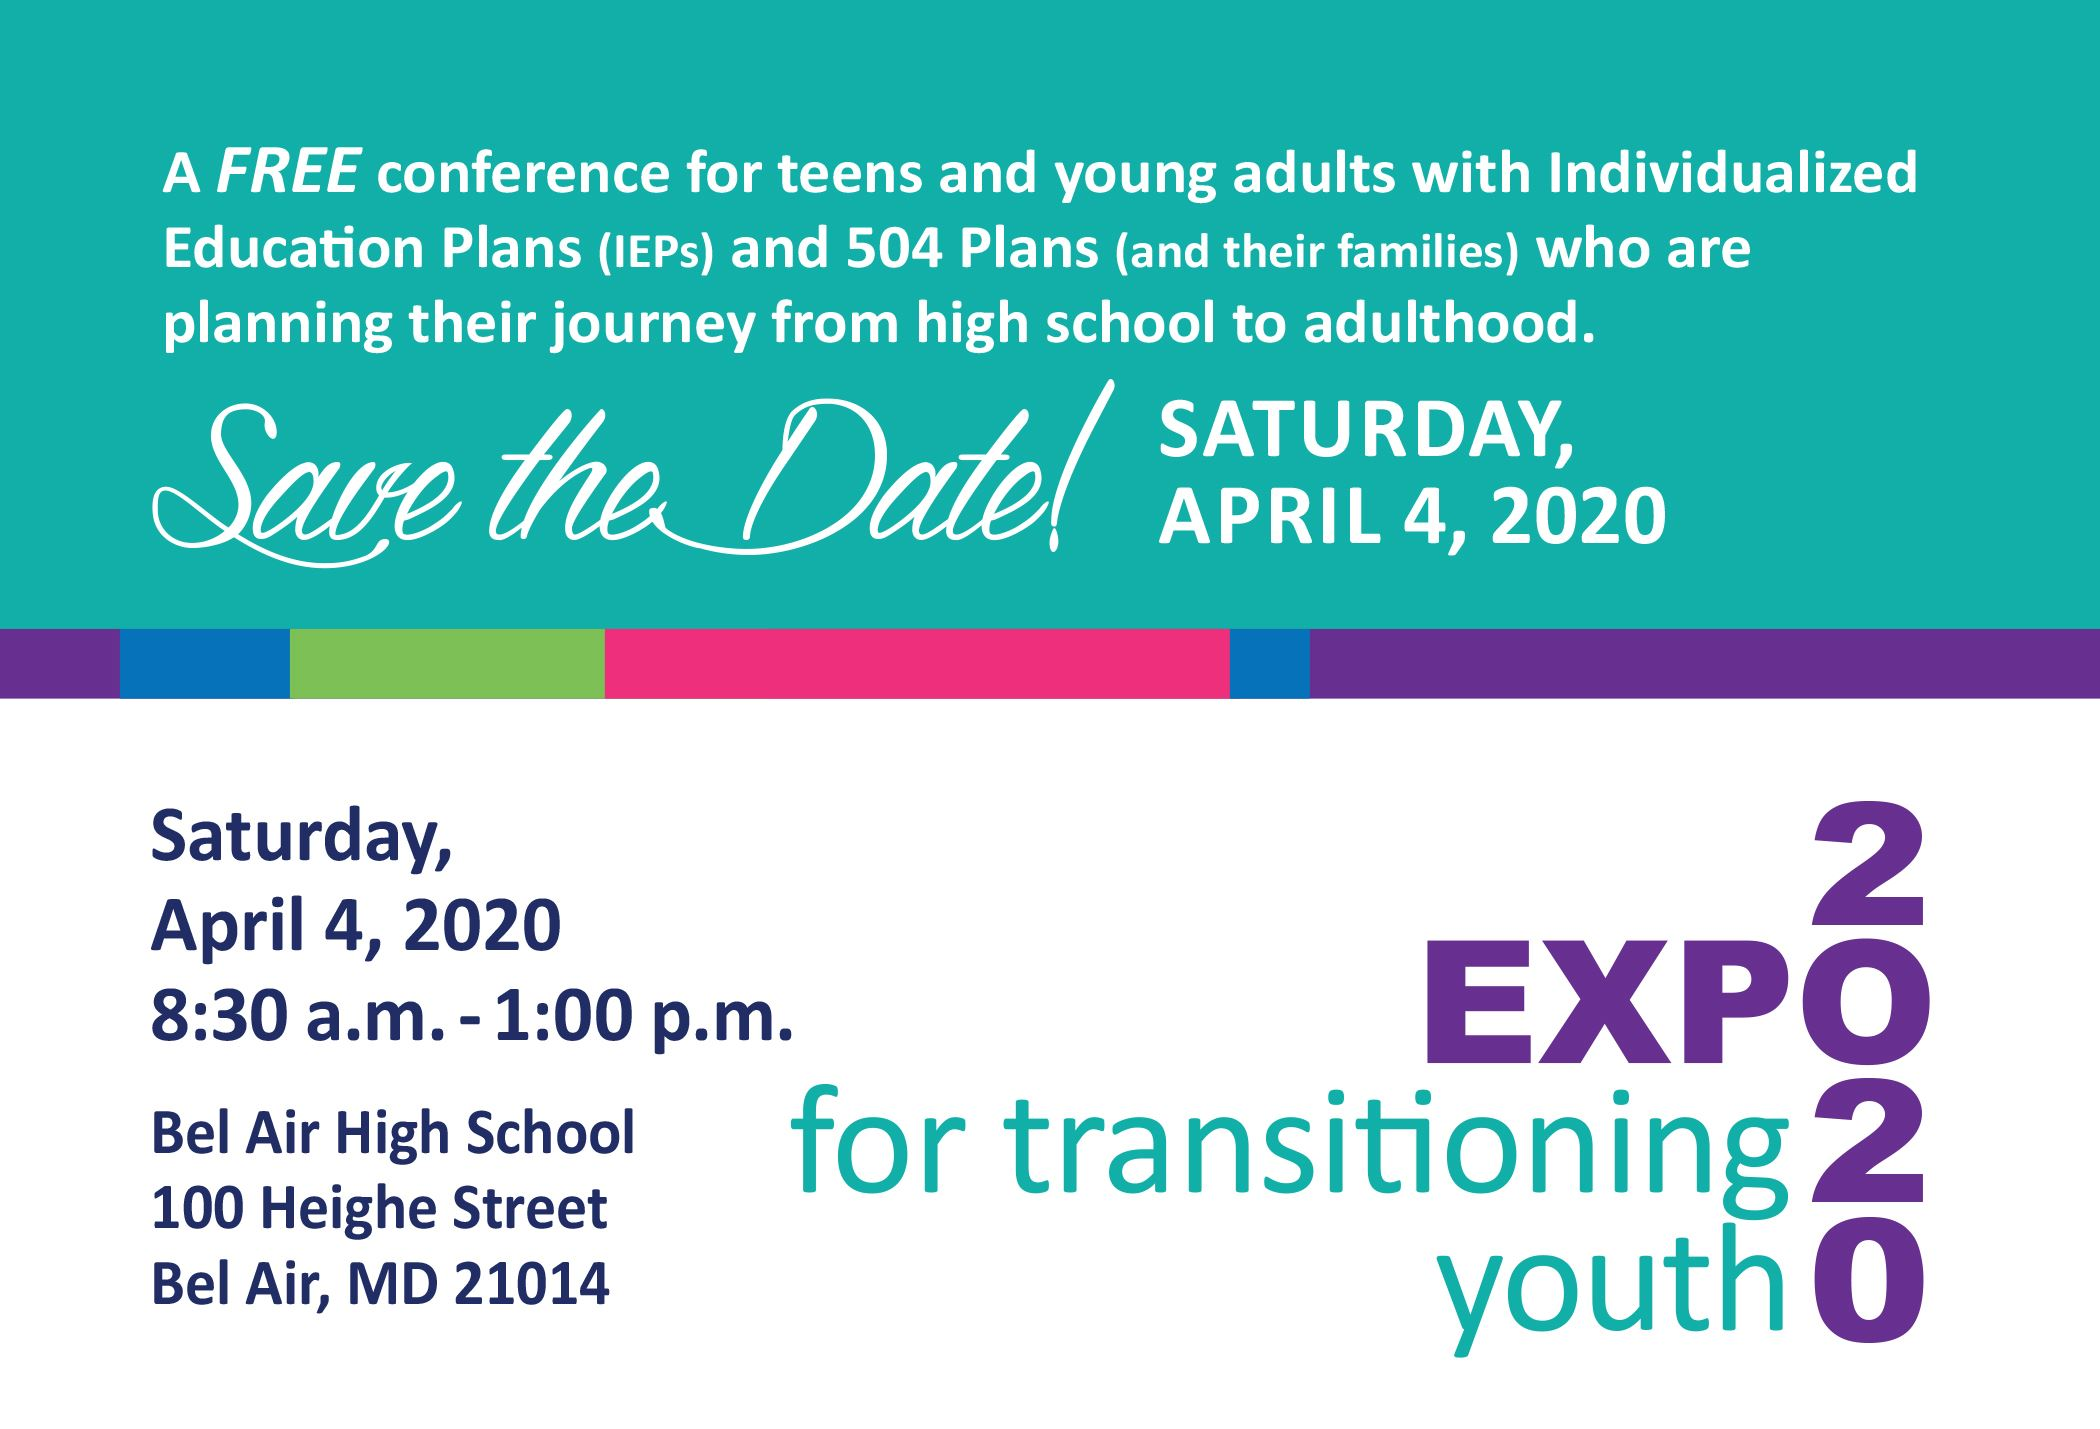 Transitioning Expo Save the Date Image